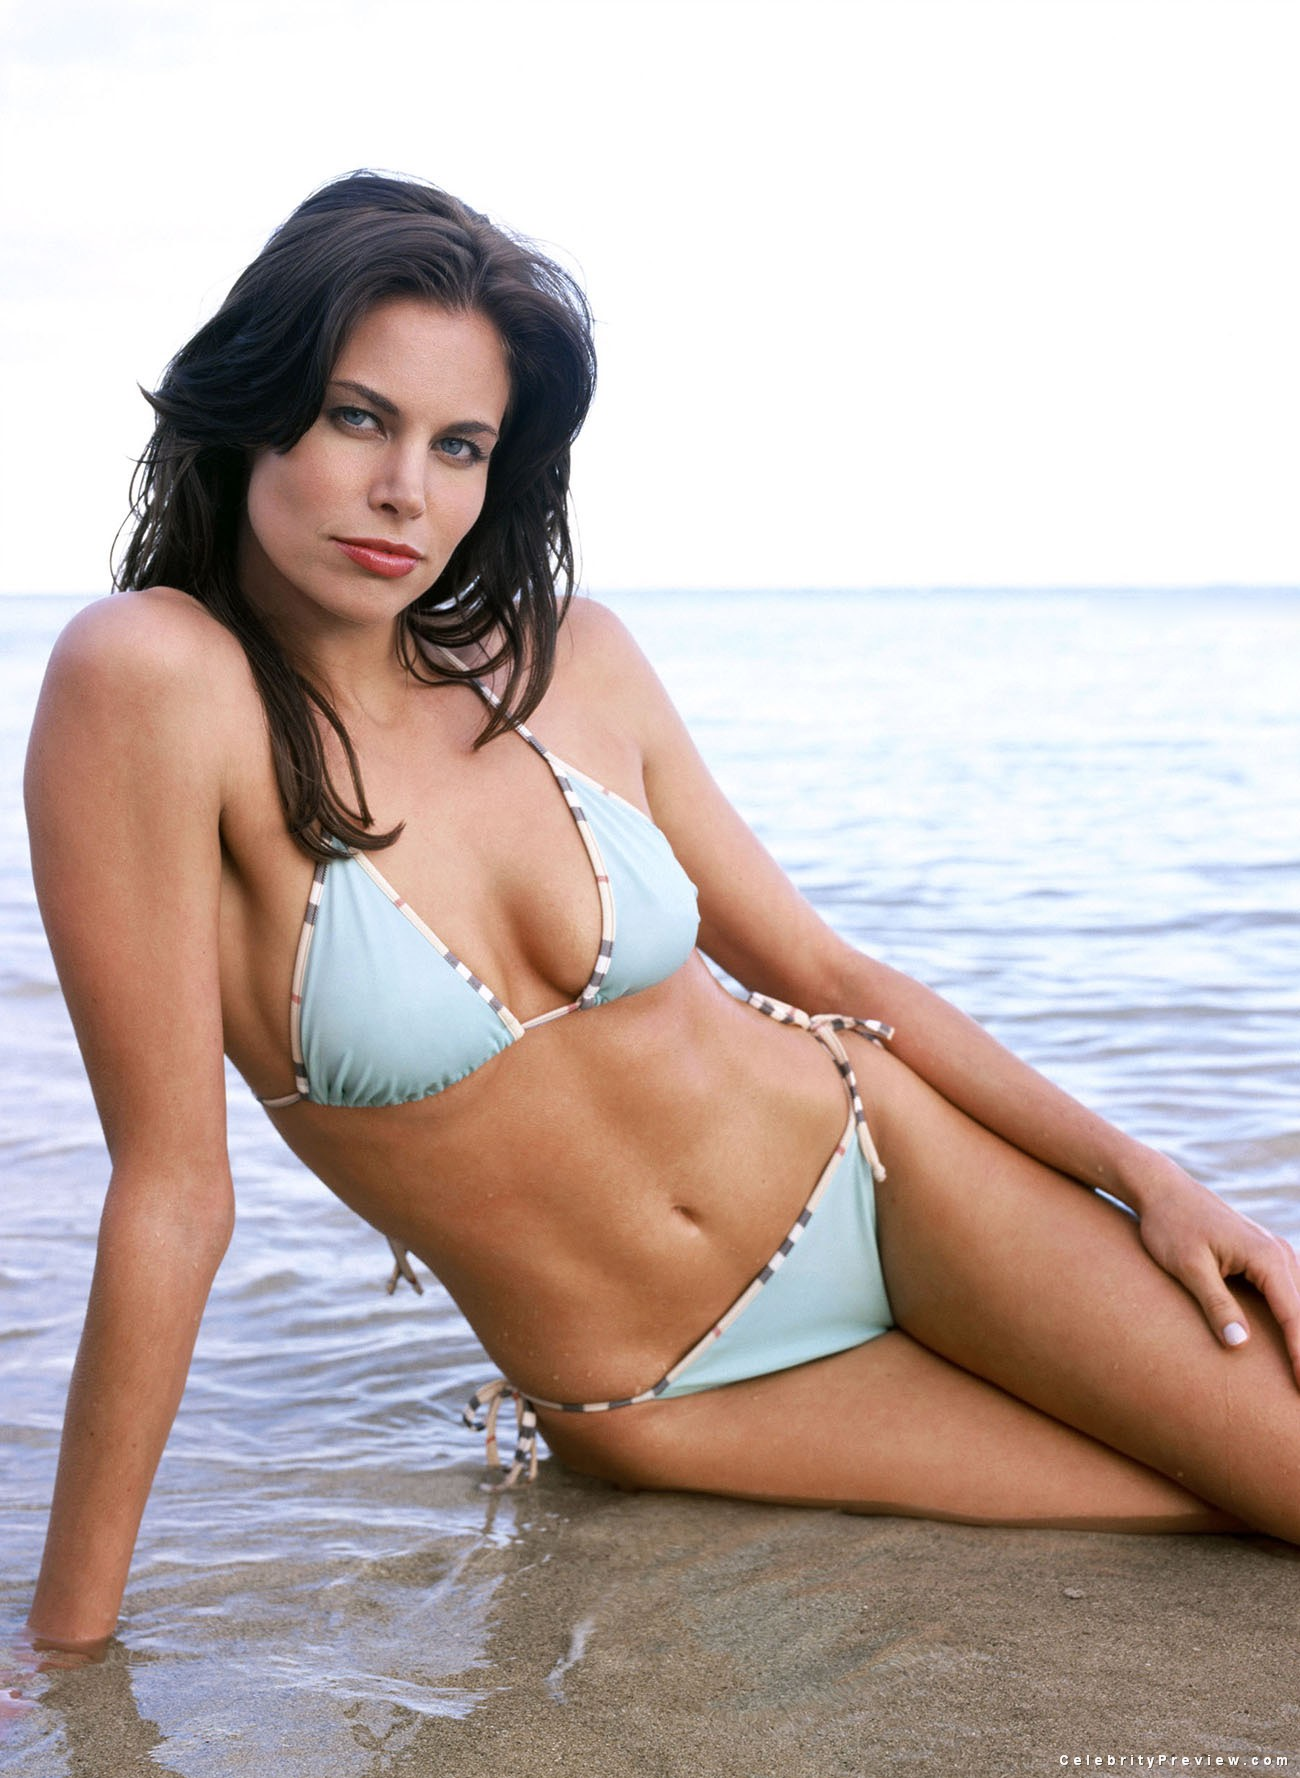 Brooke Burns en bikini sur la plage